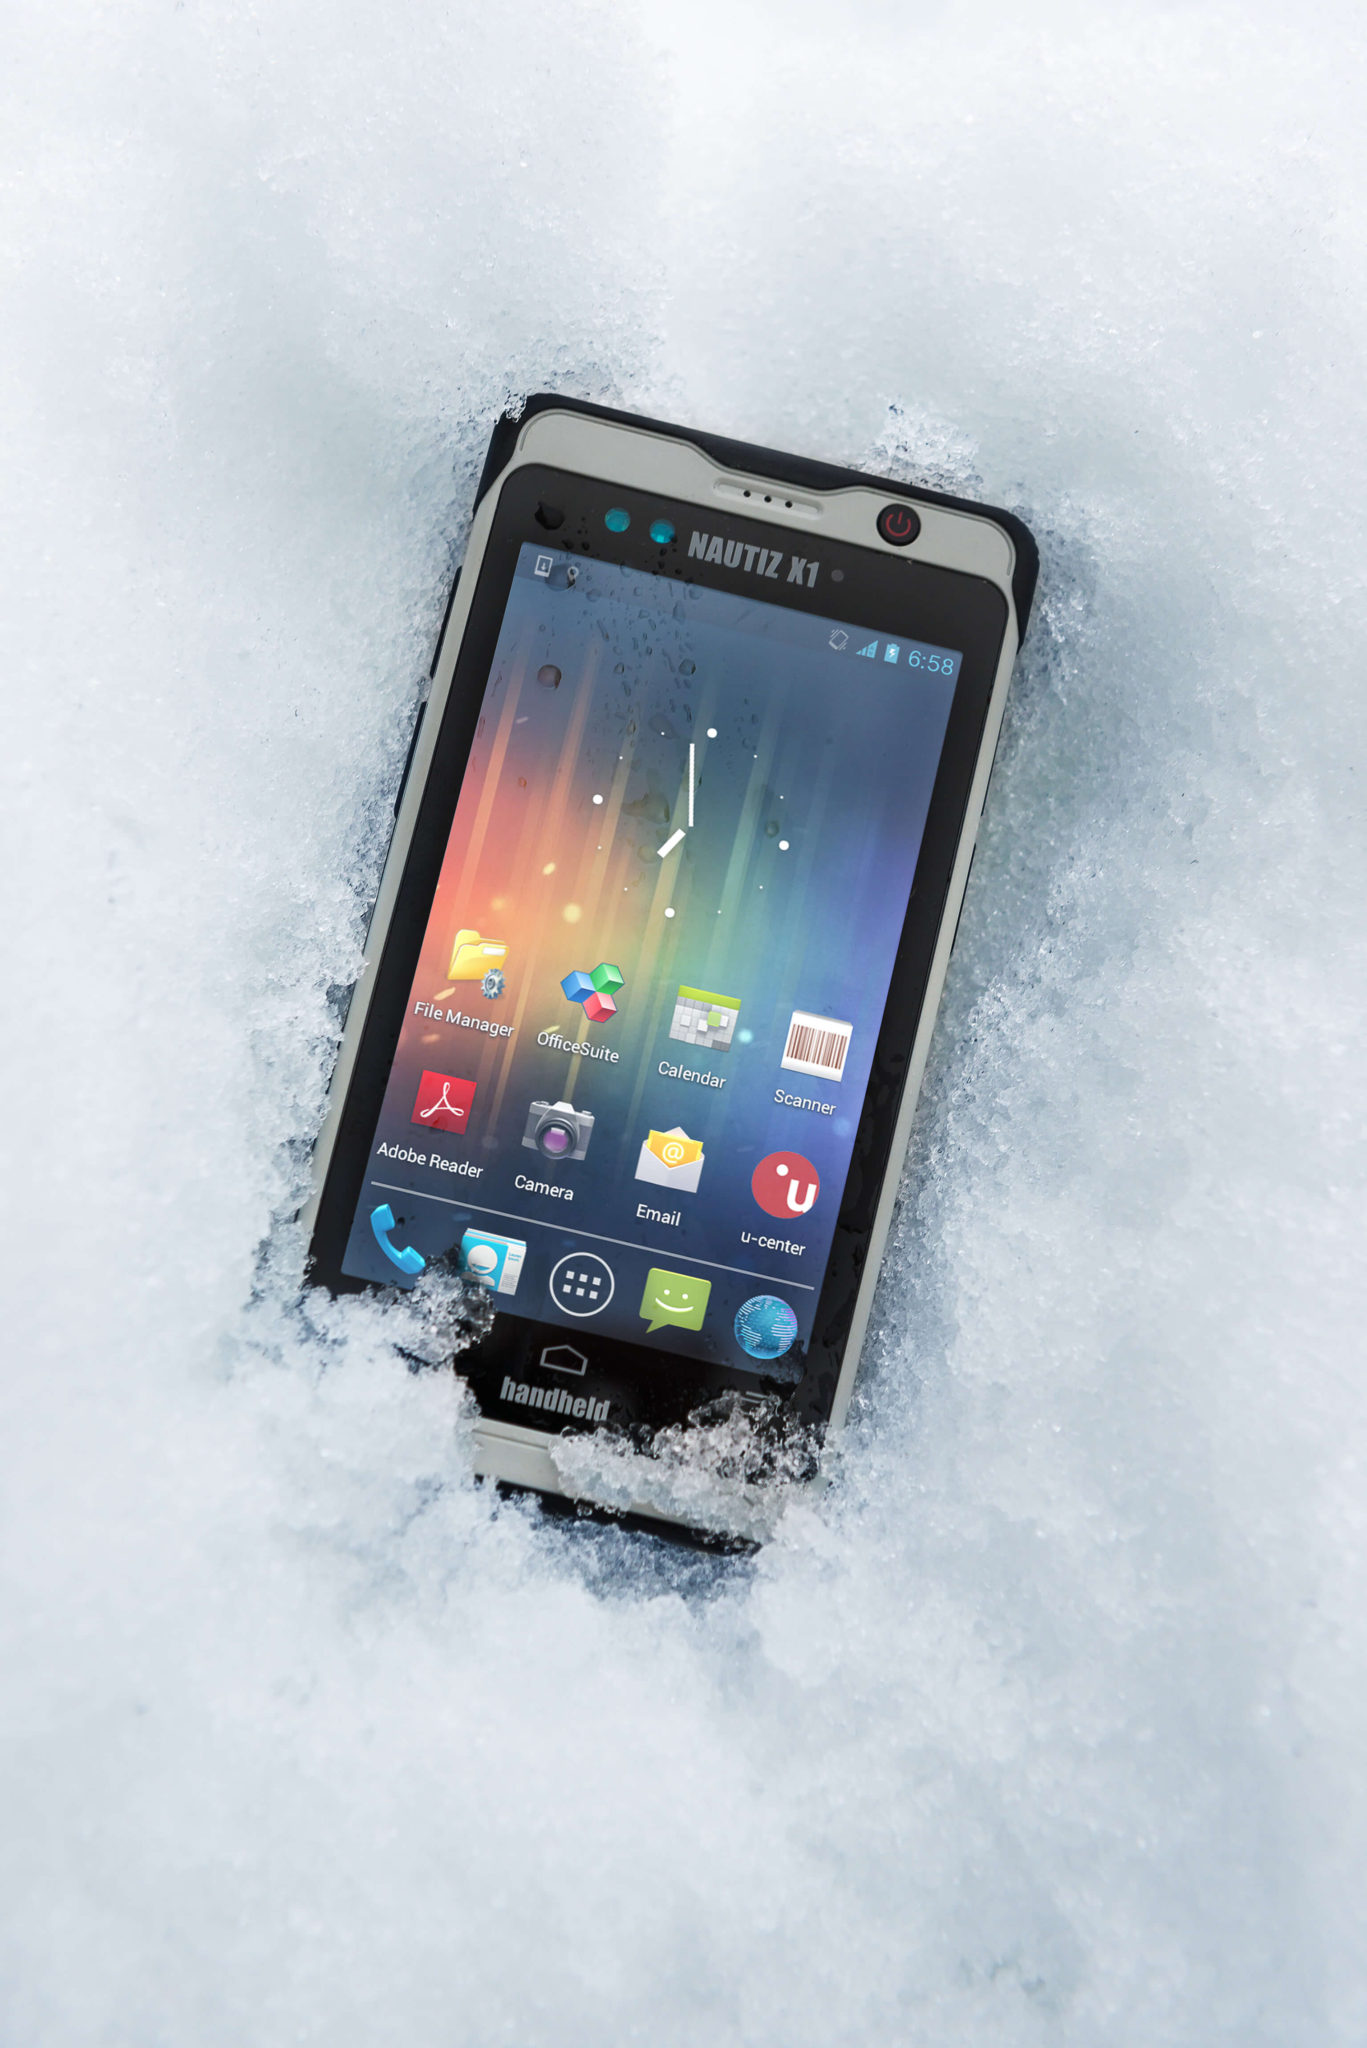 nautiz-x1-rugged-handheld-ip67-snow